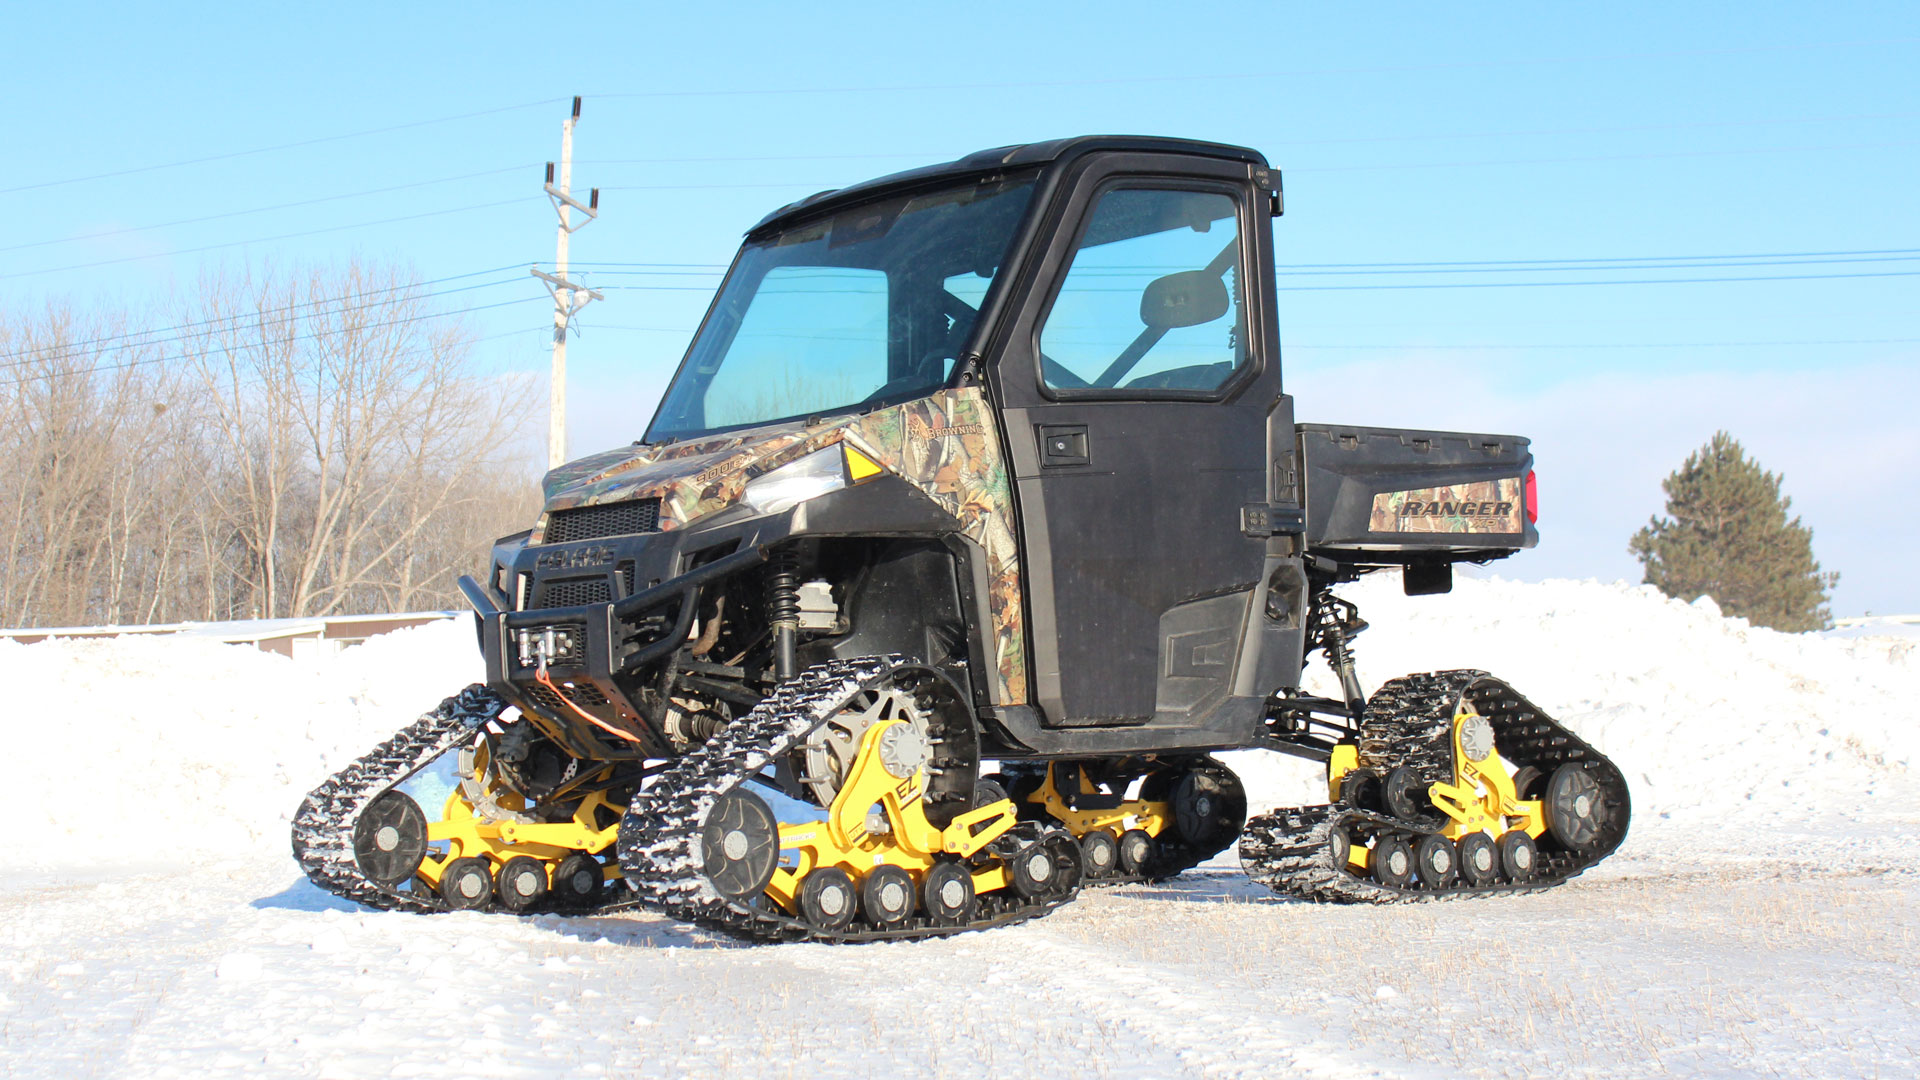 Mattracks Ez Series Atv Side By Side Tracks